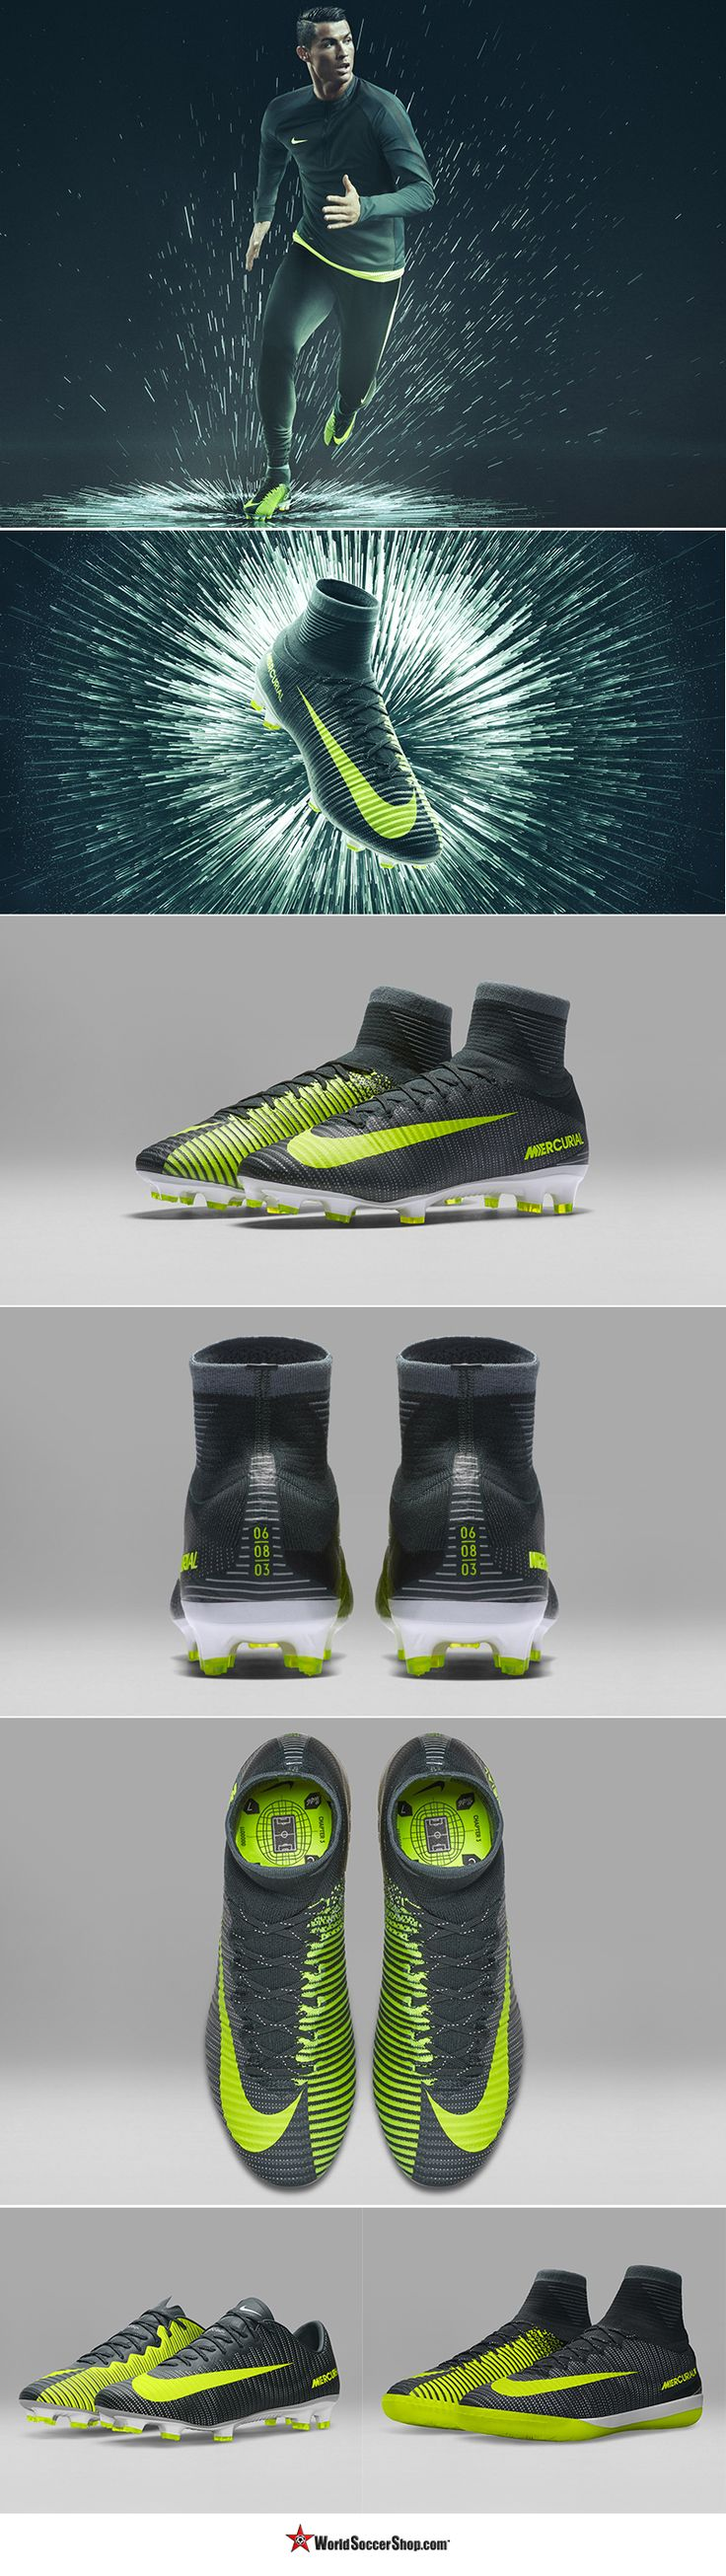 THE ALL NEW Nike Mercurial Superfly V CR7 SG - The next story in the life of Cristiano Ronaldo. Based on the moment he was discovered by Manchester United. Speed has been redesigned, redeveloped, and reemerged. Available now at WorldSoccerShop.com #Nike #Ronaldo #Soccer